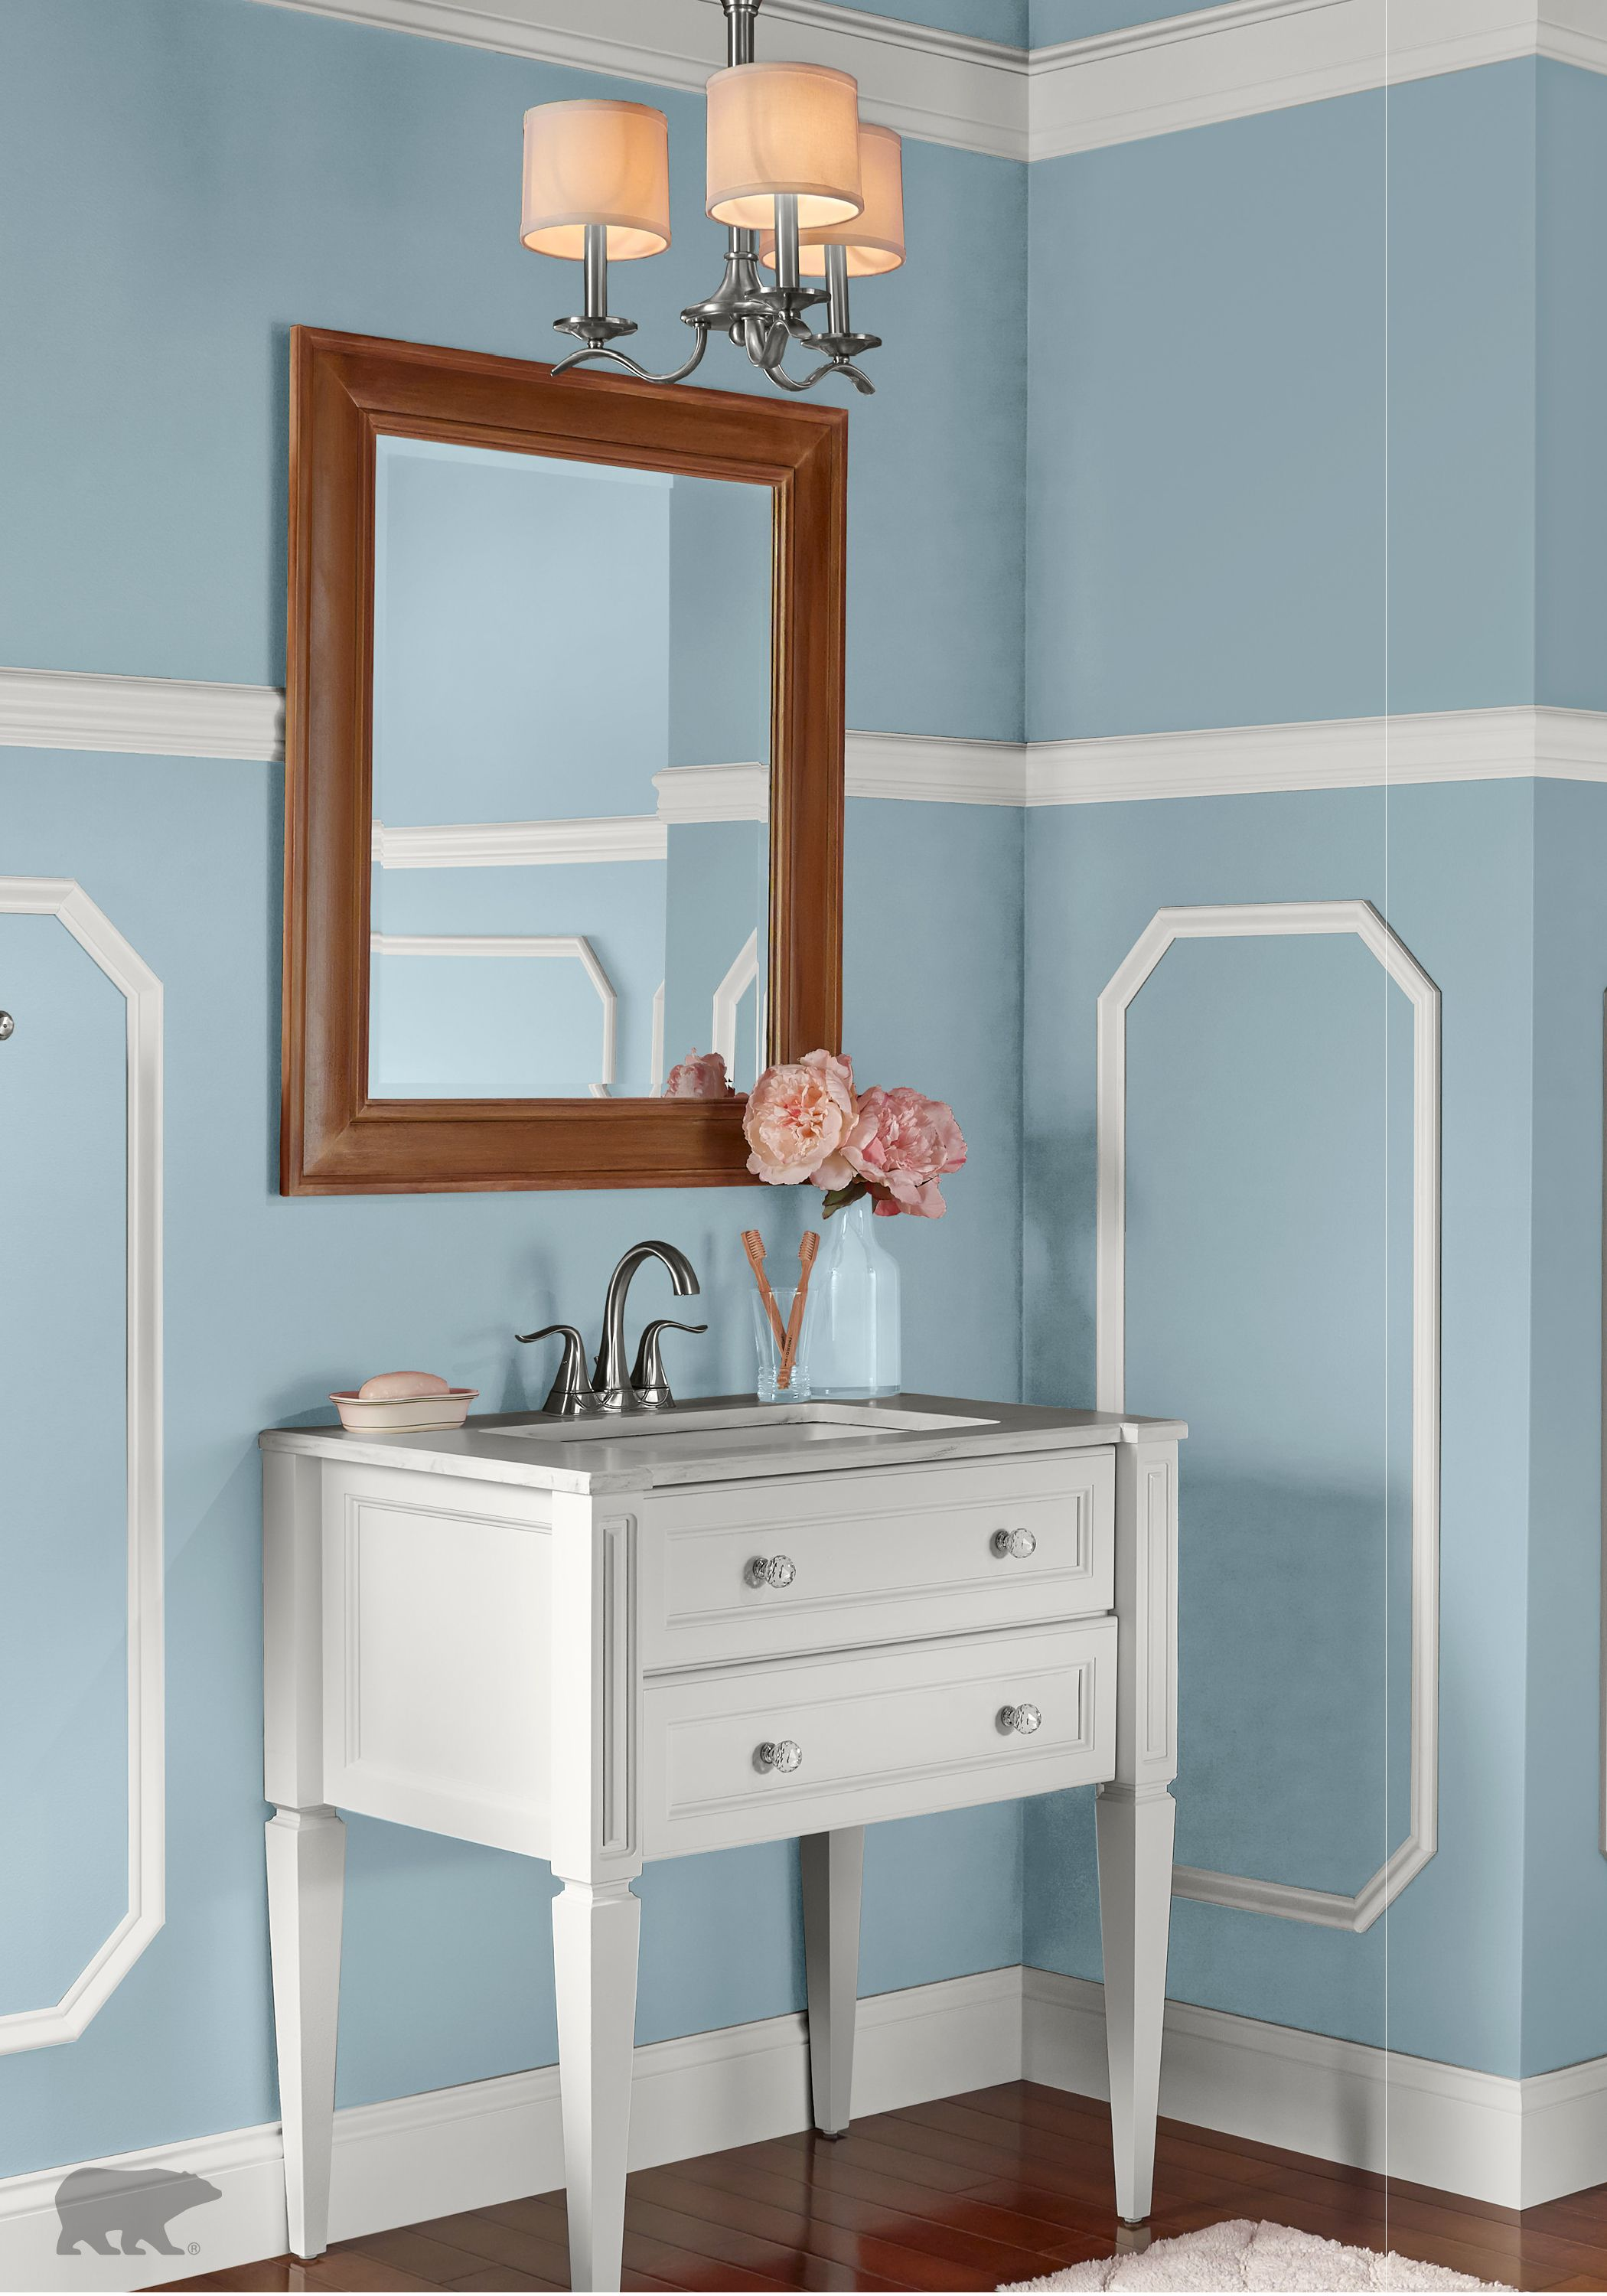 Bathroom Design Color Inspiration and Project Idea Gallery